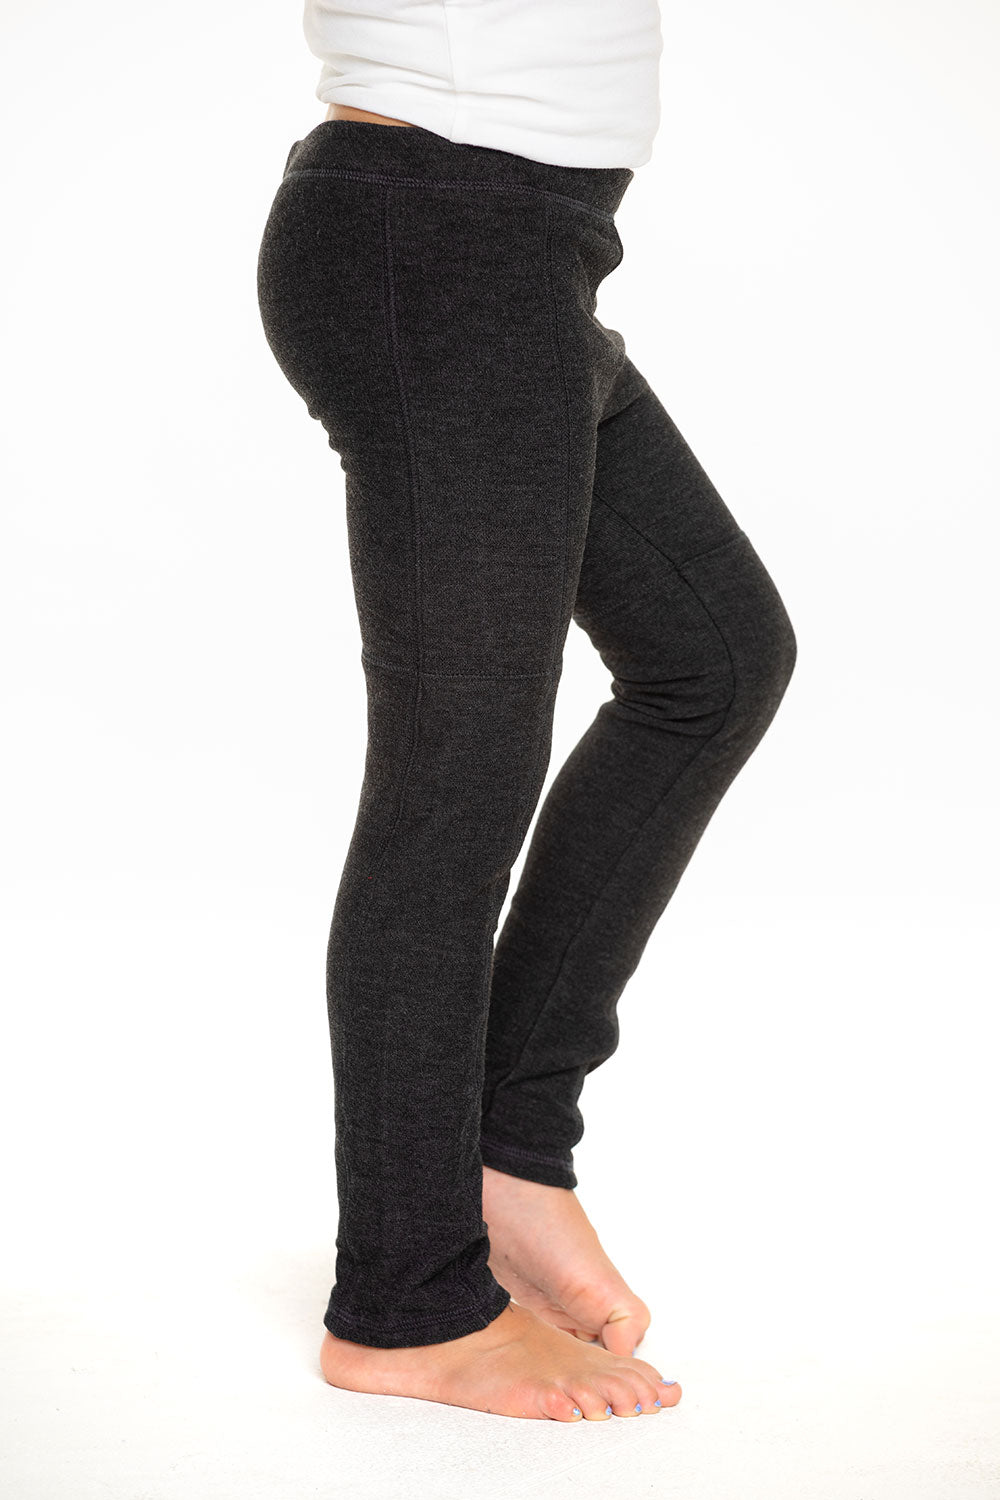 Cozy Knit Seamed Panel Legging in Black [product_type] chaserbrand4.myshopify.com